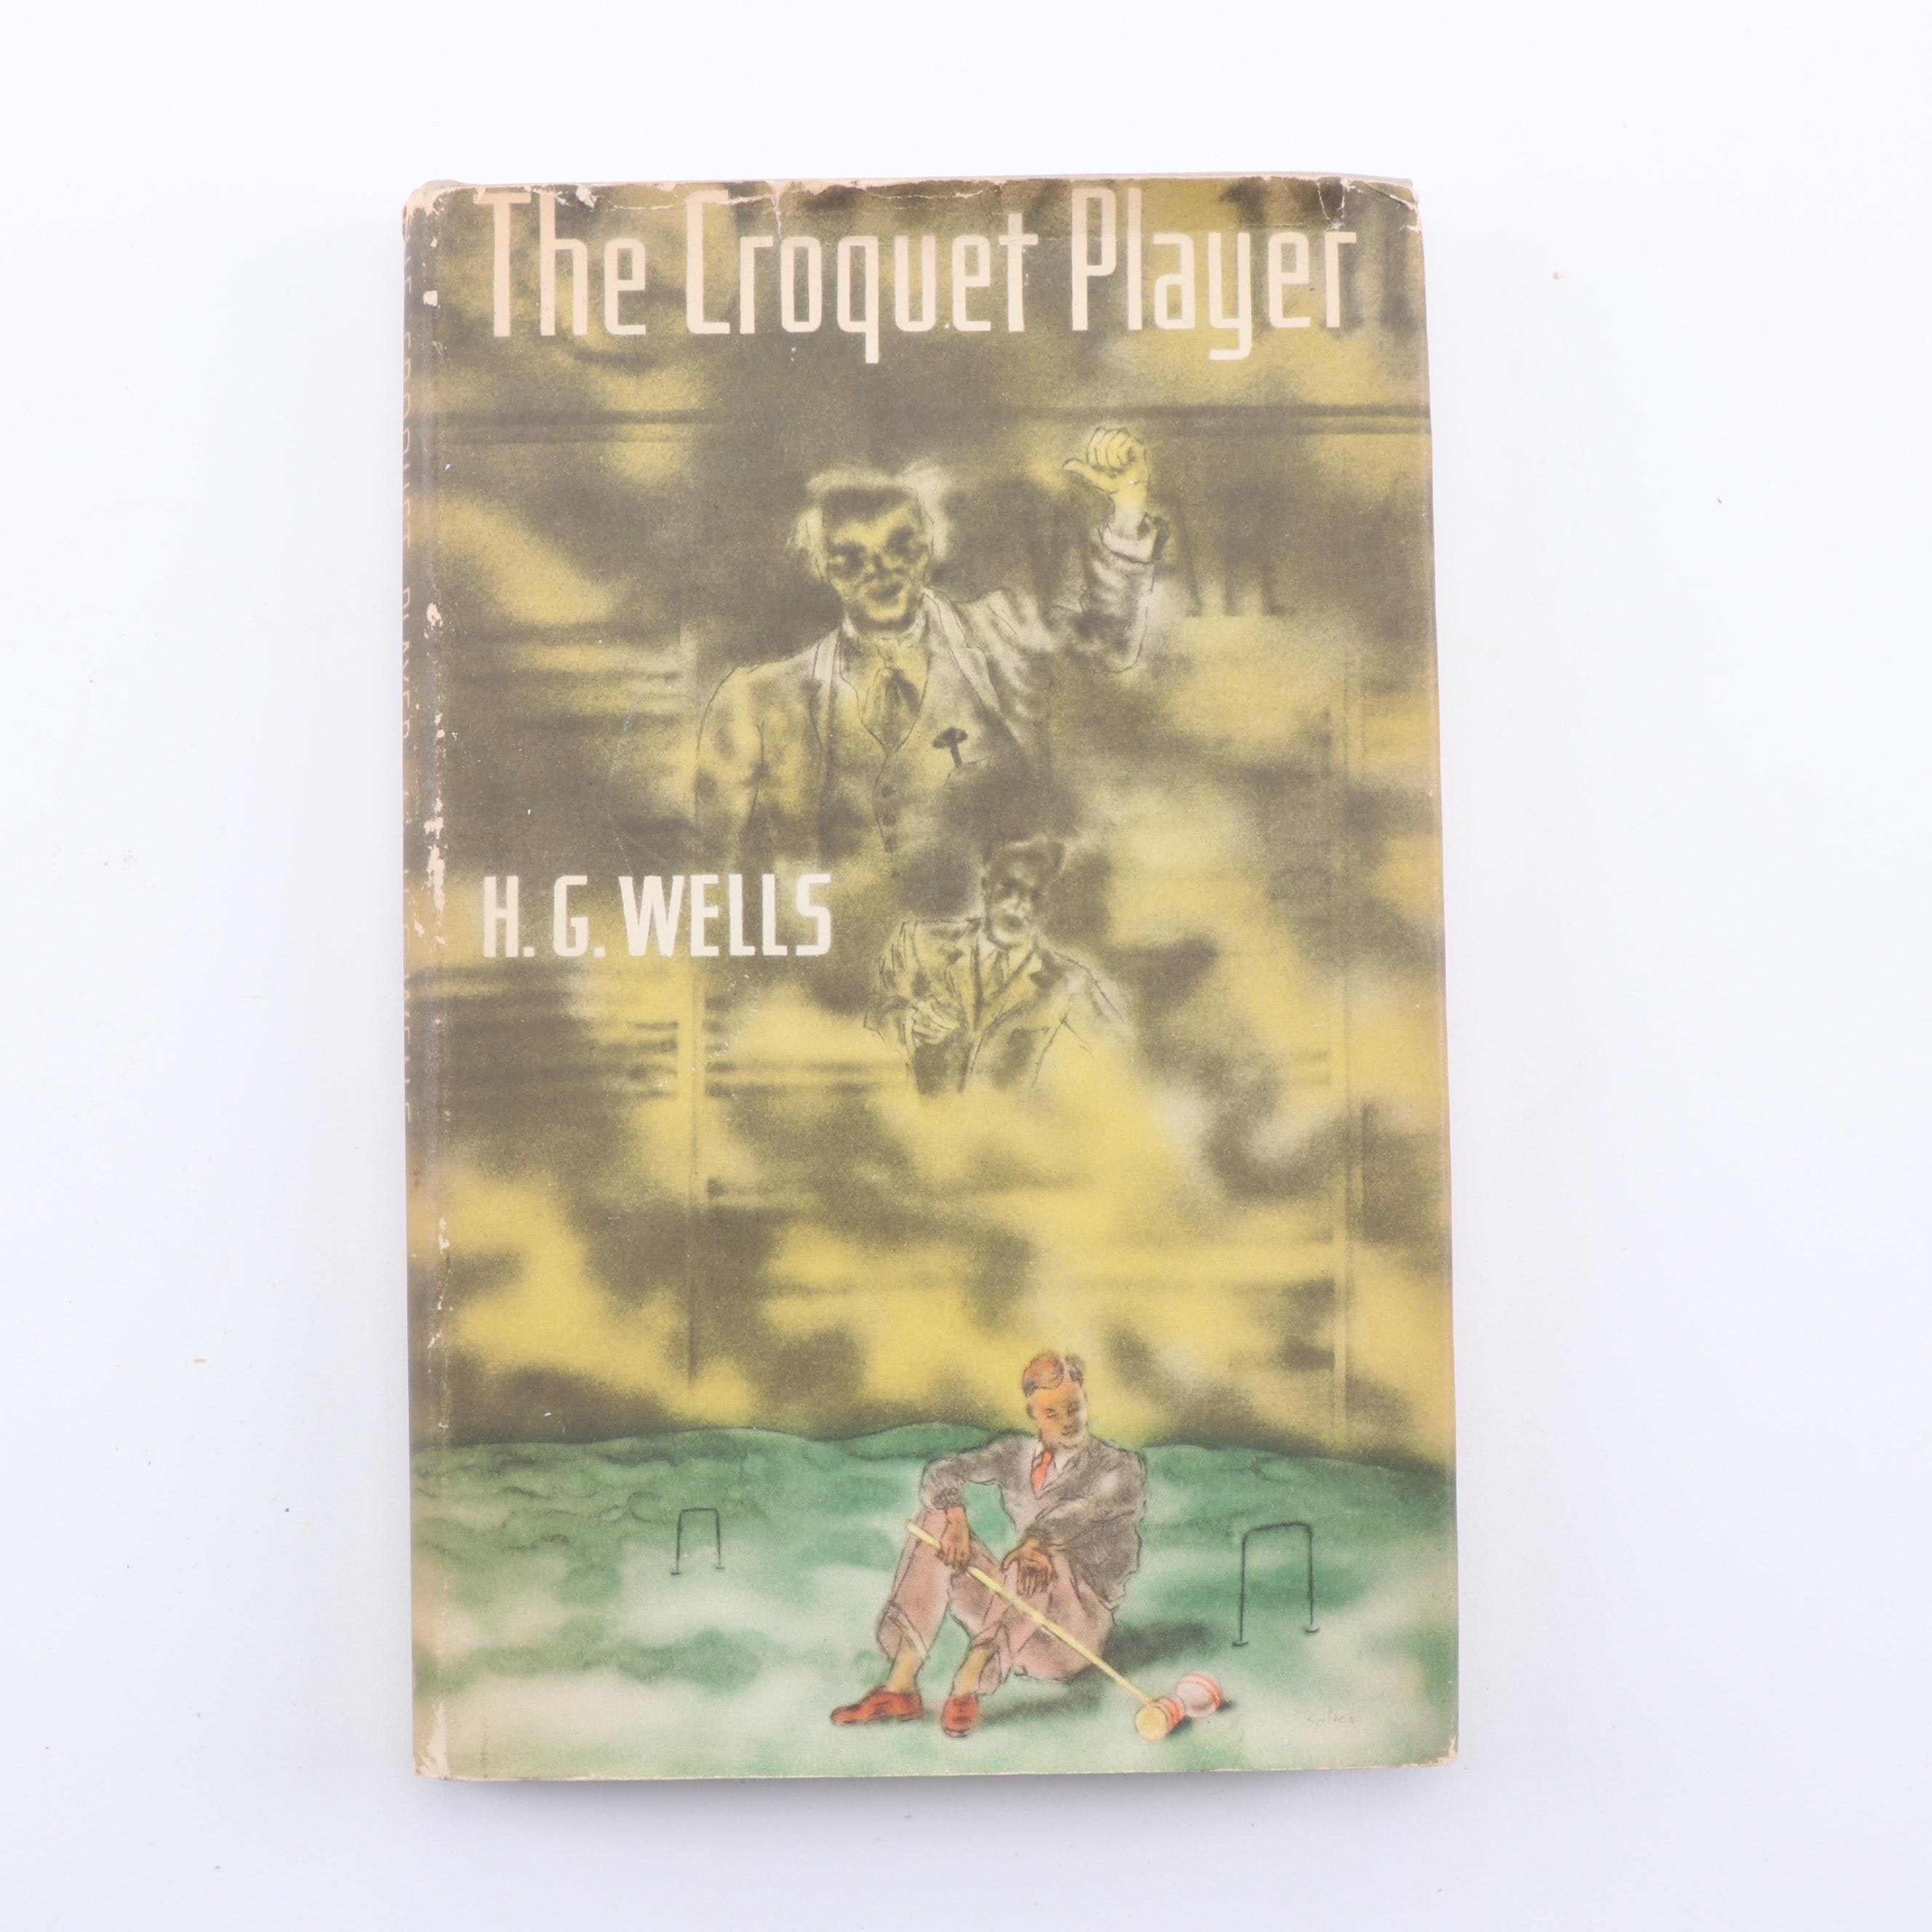 "1937 First American Edition ""The Croquet Player"" by H. G. Wells"